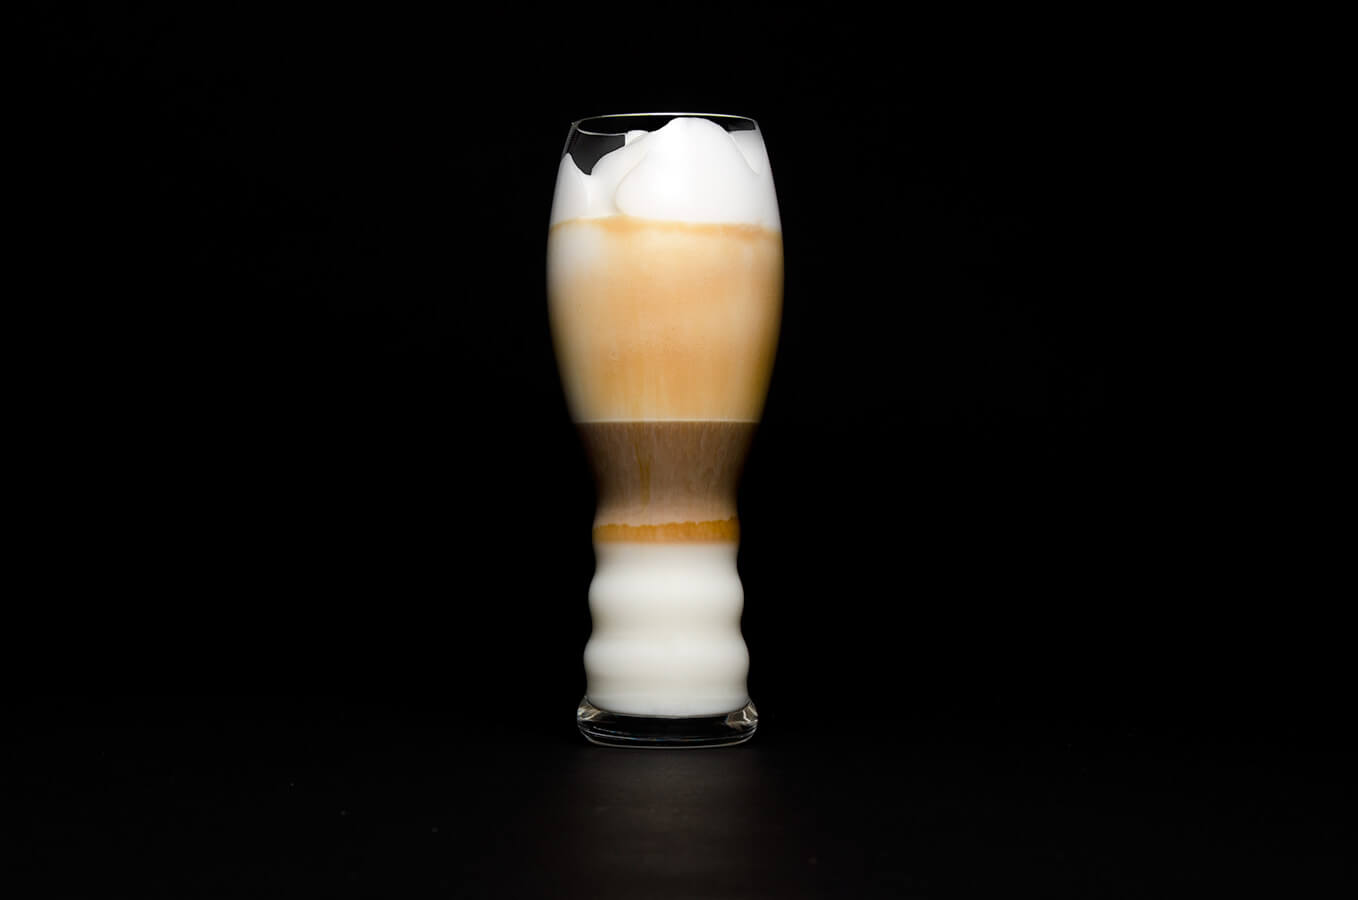 Coffee Photography by Carrie Morgan